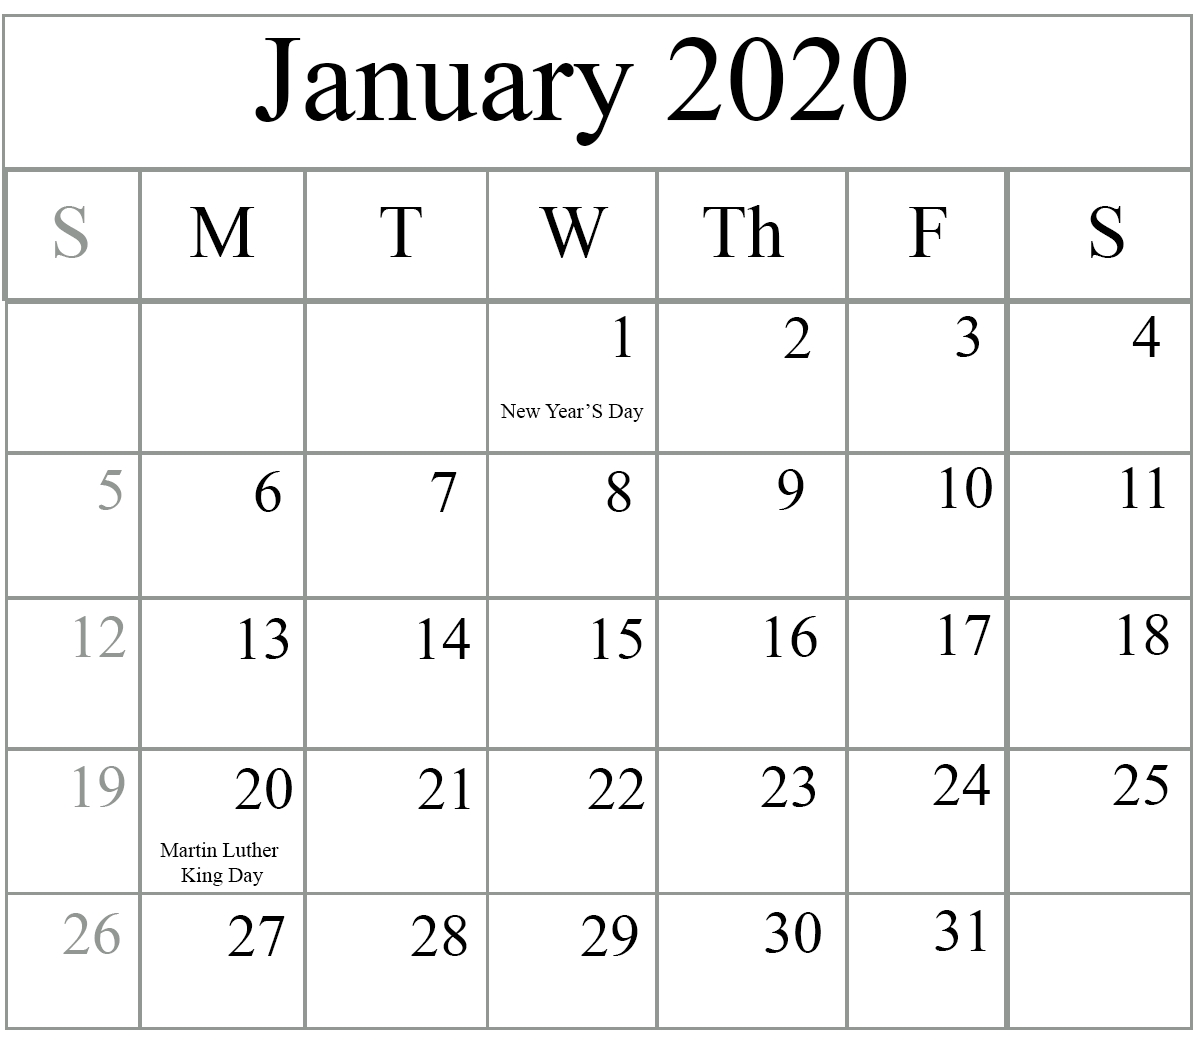 Free January 2020 Printable Calendar In Pdf, Excel & Word regarding Downloadable 2020 Monthly Calendar Template Word